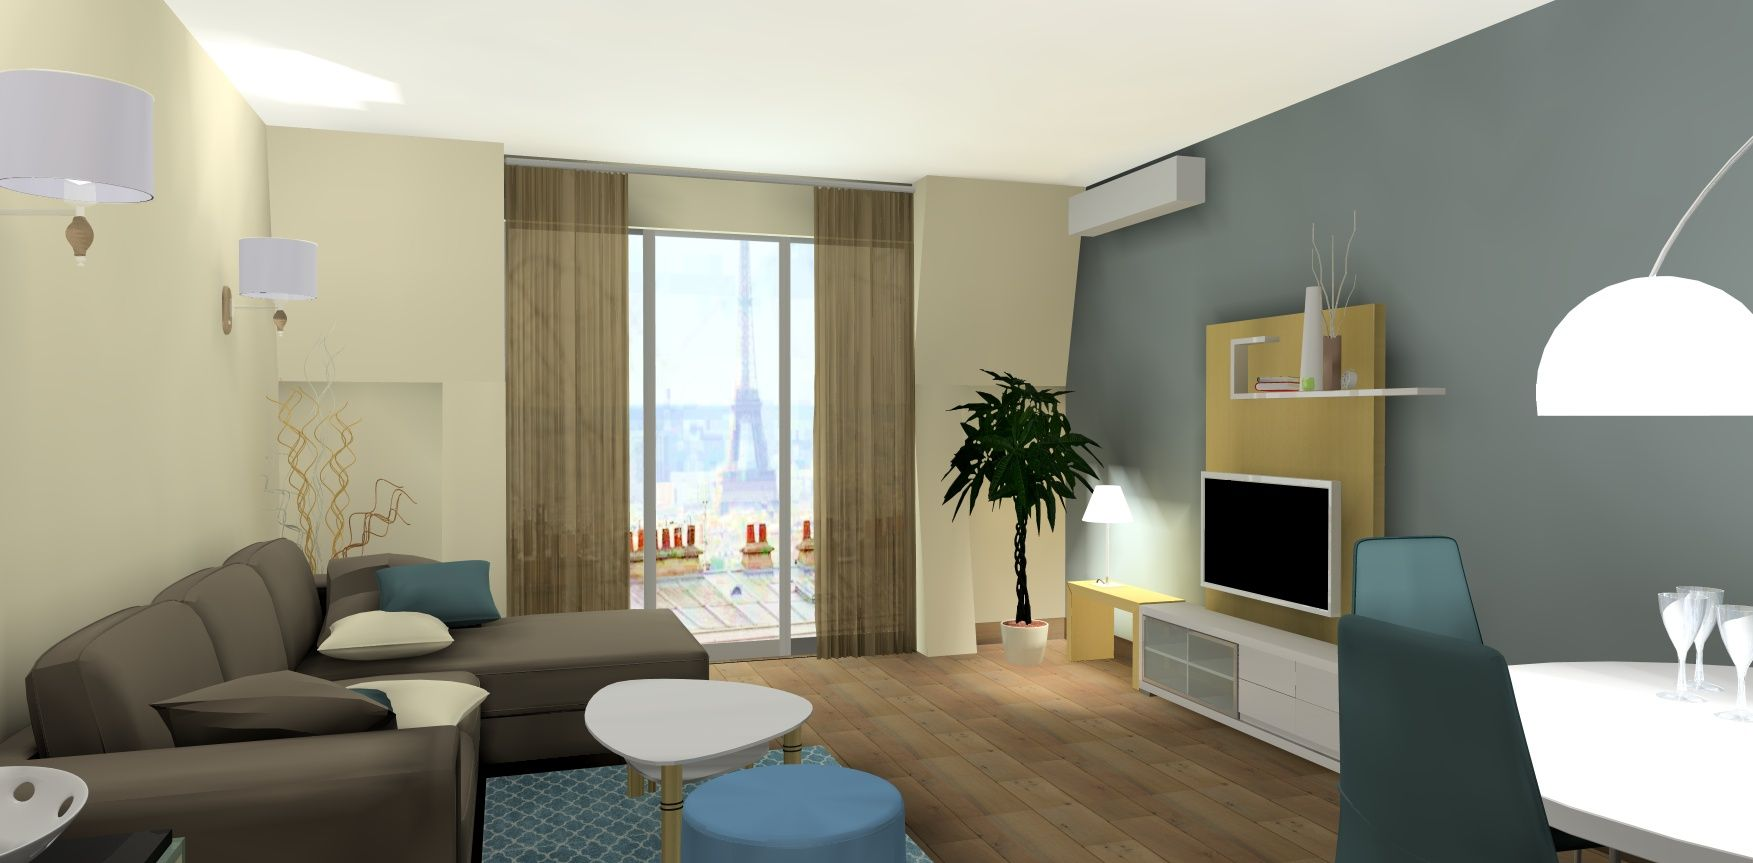 Simulation Appartement 3d Vue 3d Salon Lin Et Bleu Appartement Plan 3d Salon